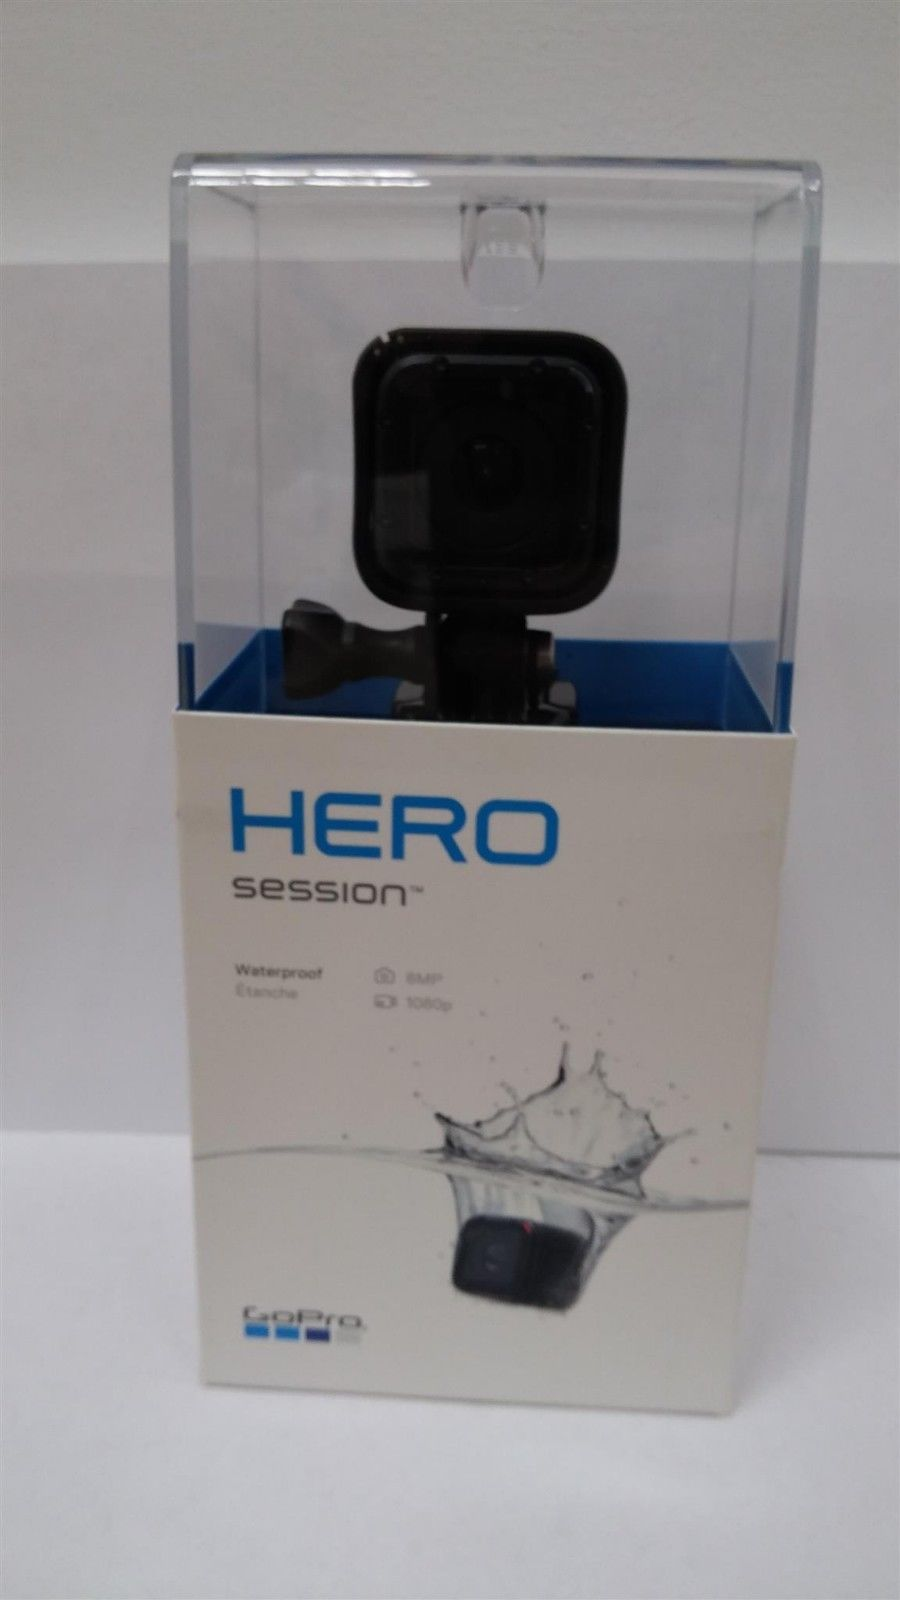 GoPro Hero Session Model HD, Wi-Fi Watertight Digicam